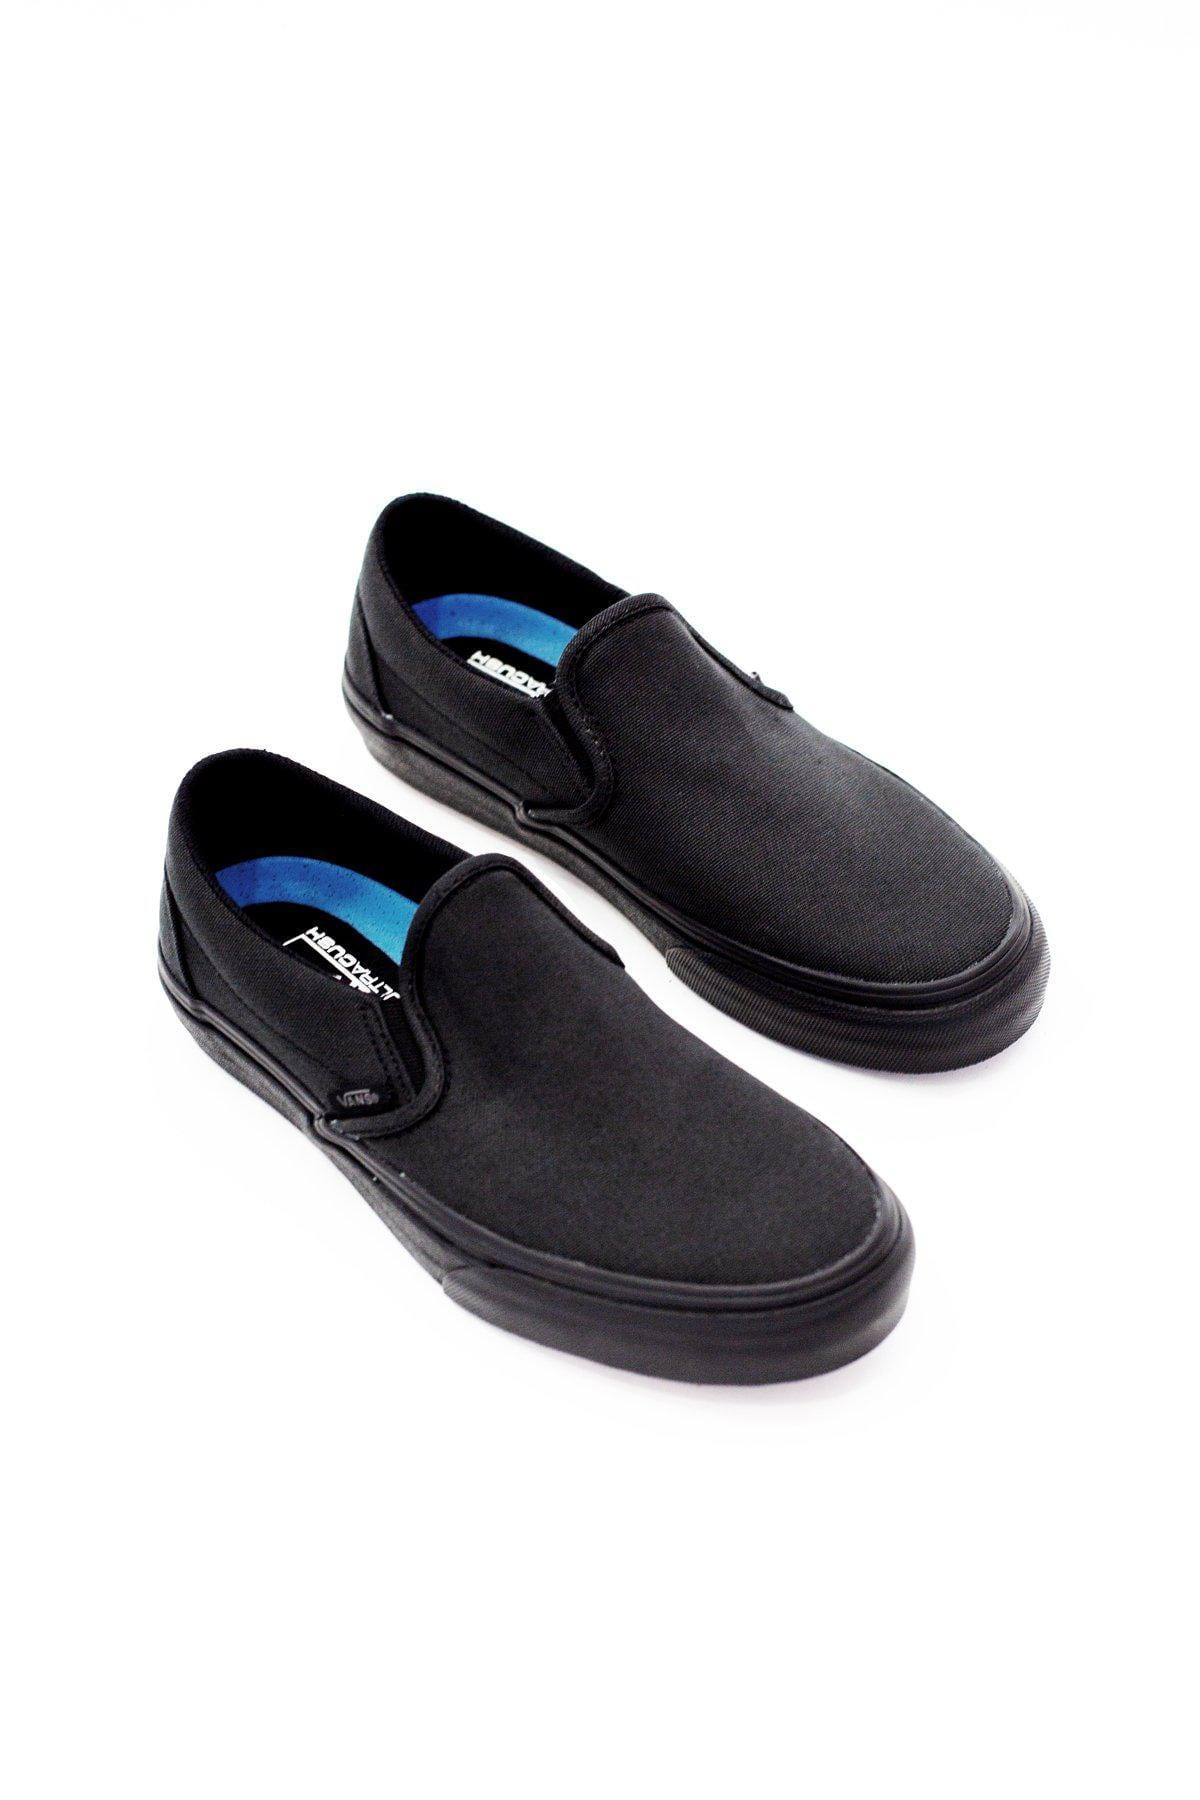 0461e64848 Vans Made For The Makers Slip-On UC